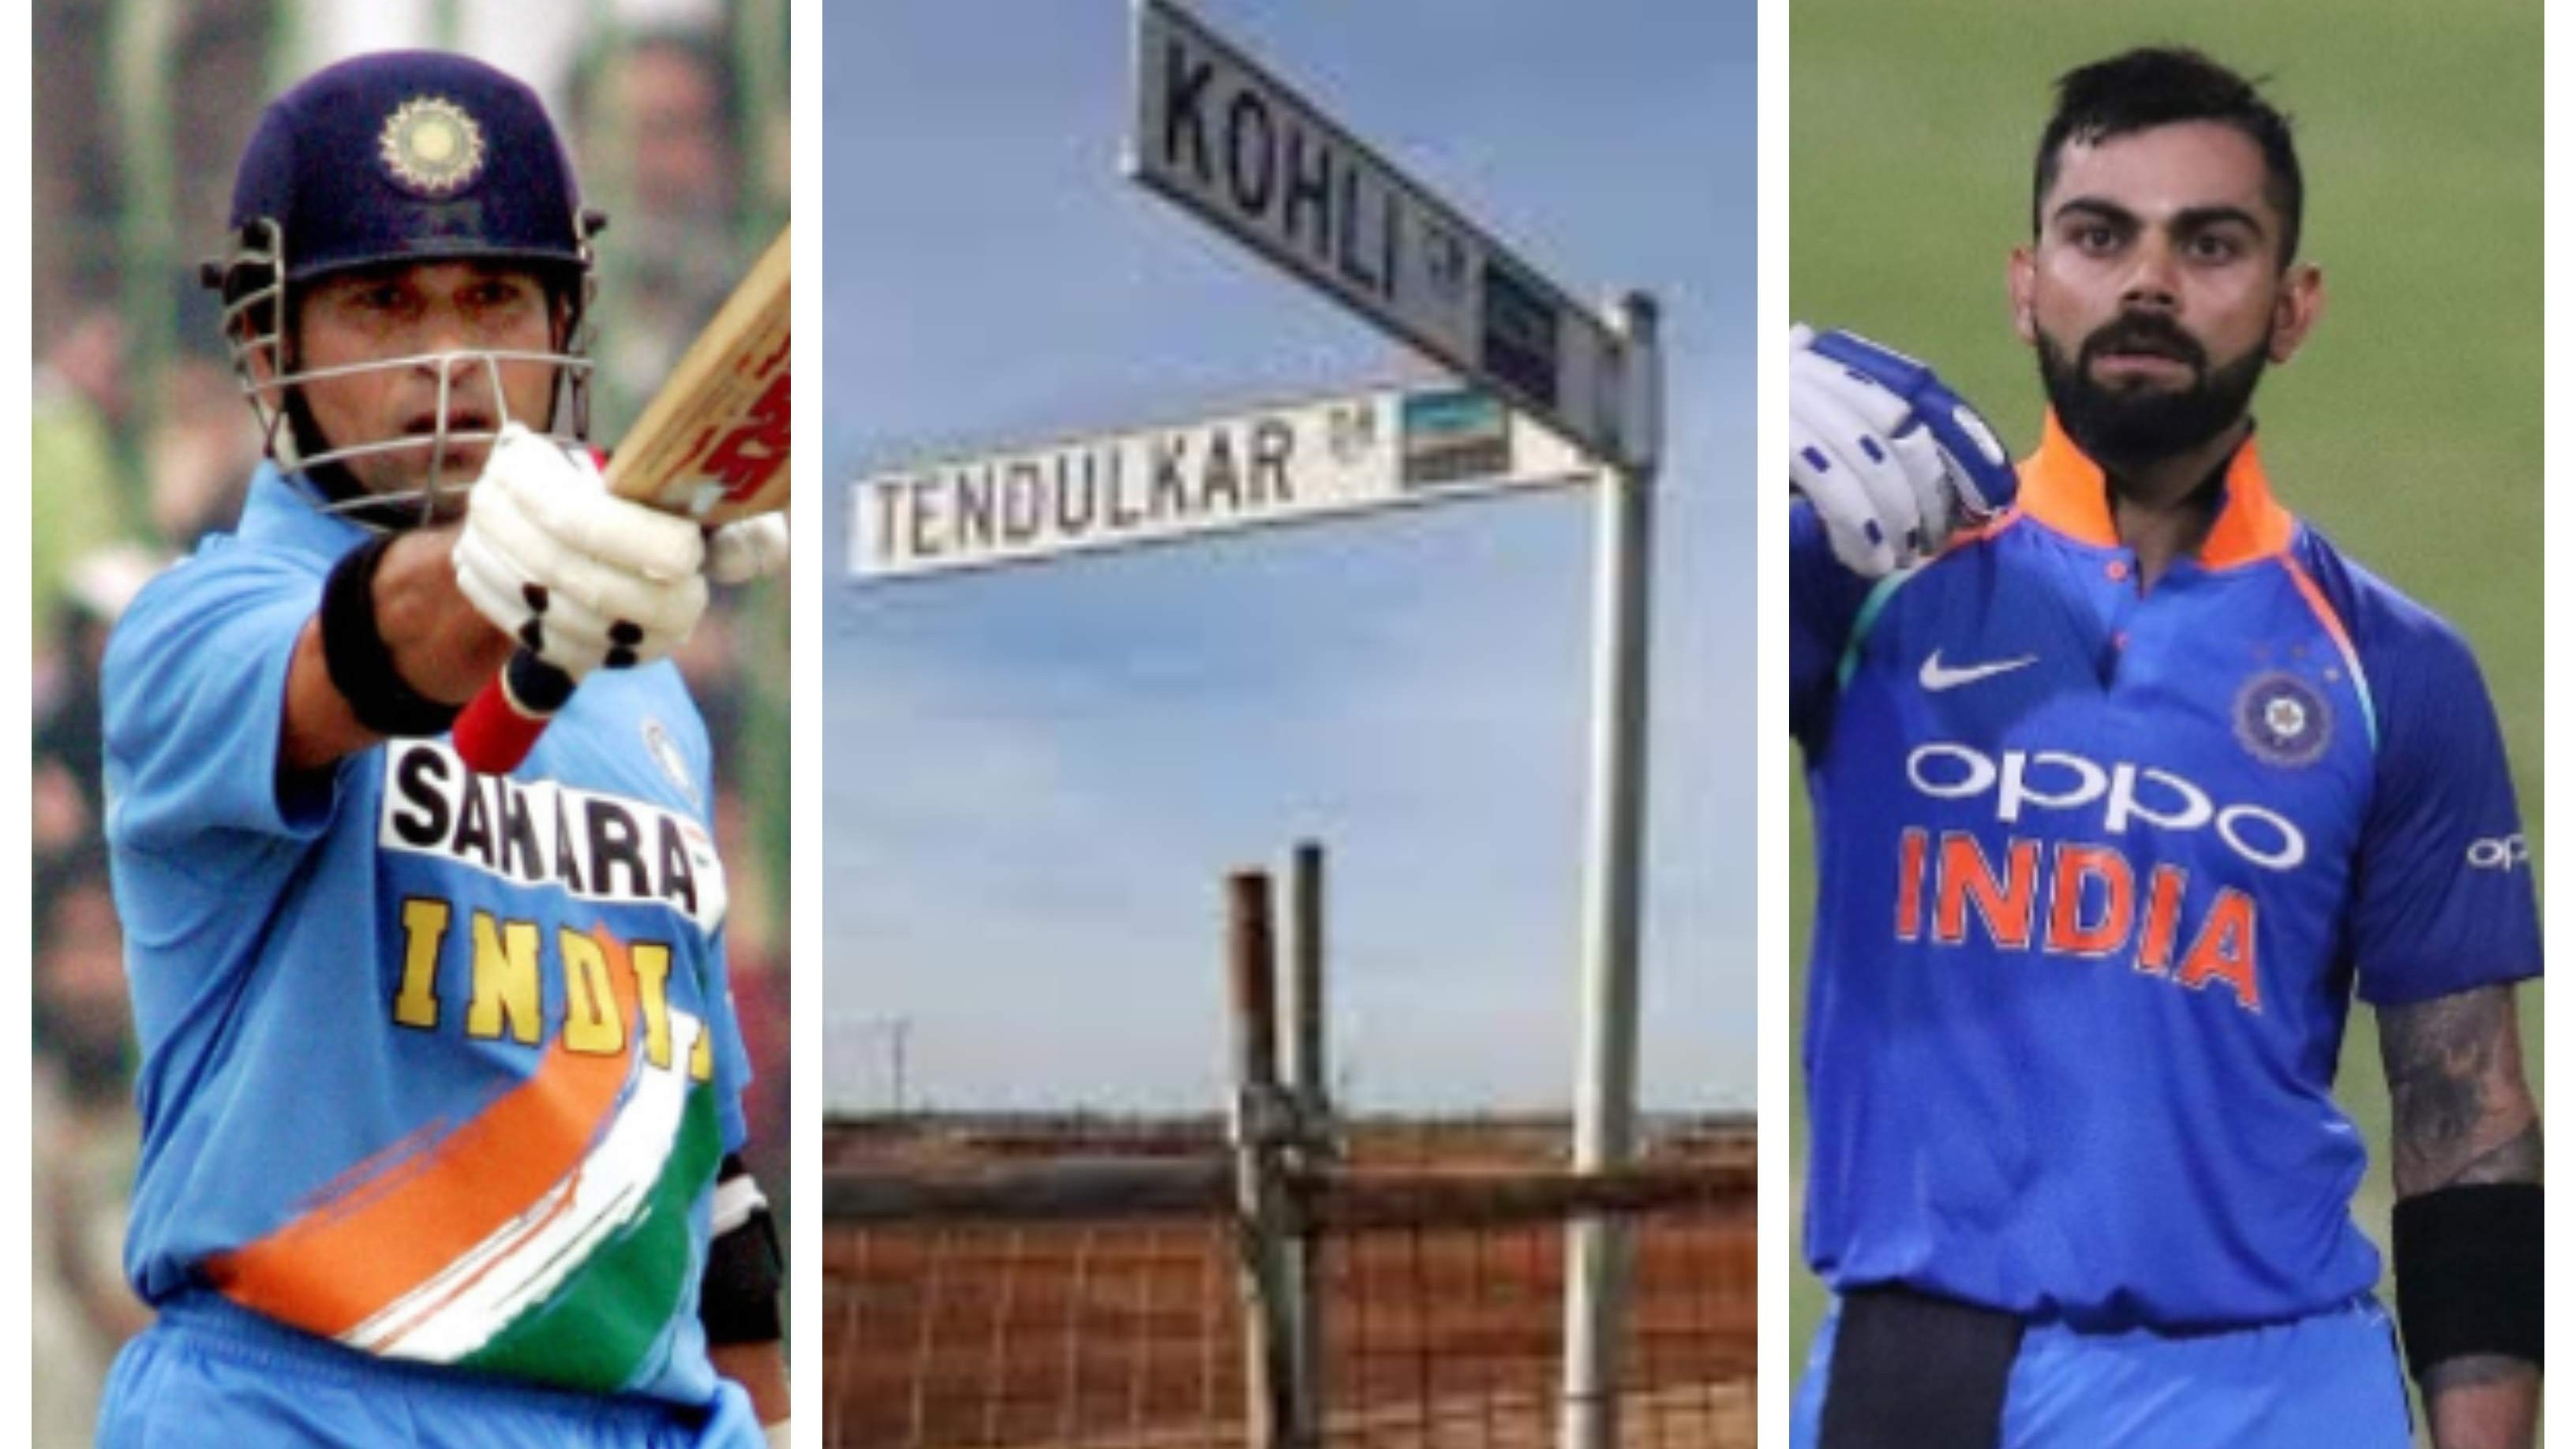 Want to live at Kohli Crescent or Tendulkar Drive? Town in Australia has streets named after cricket greats